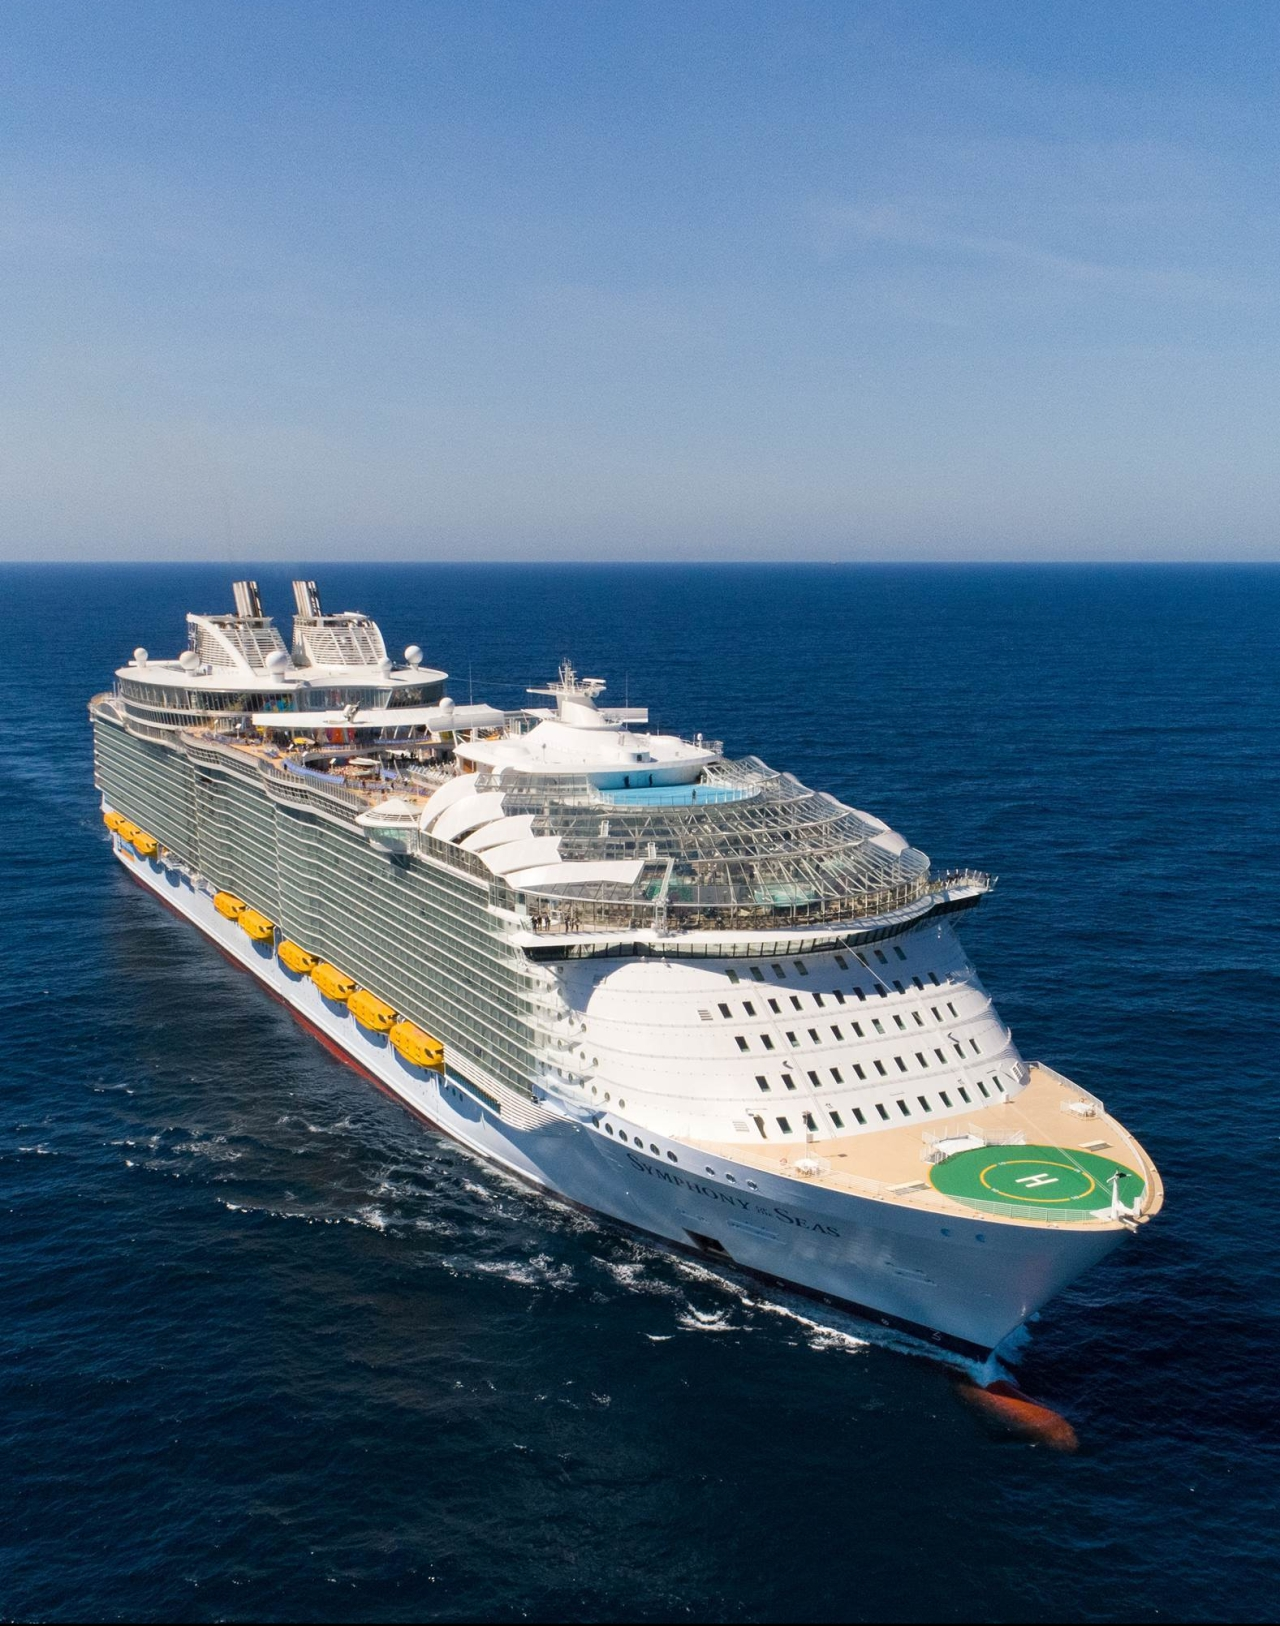 Symphony of the Seas sails the ultimate adventure